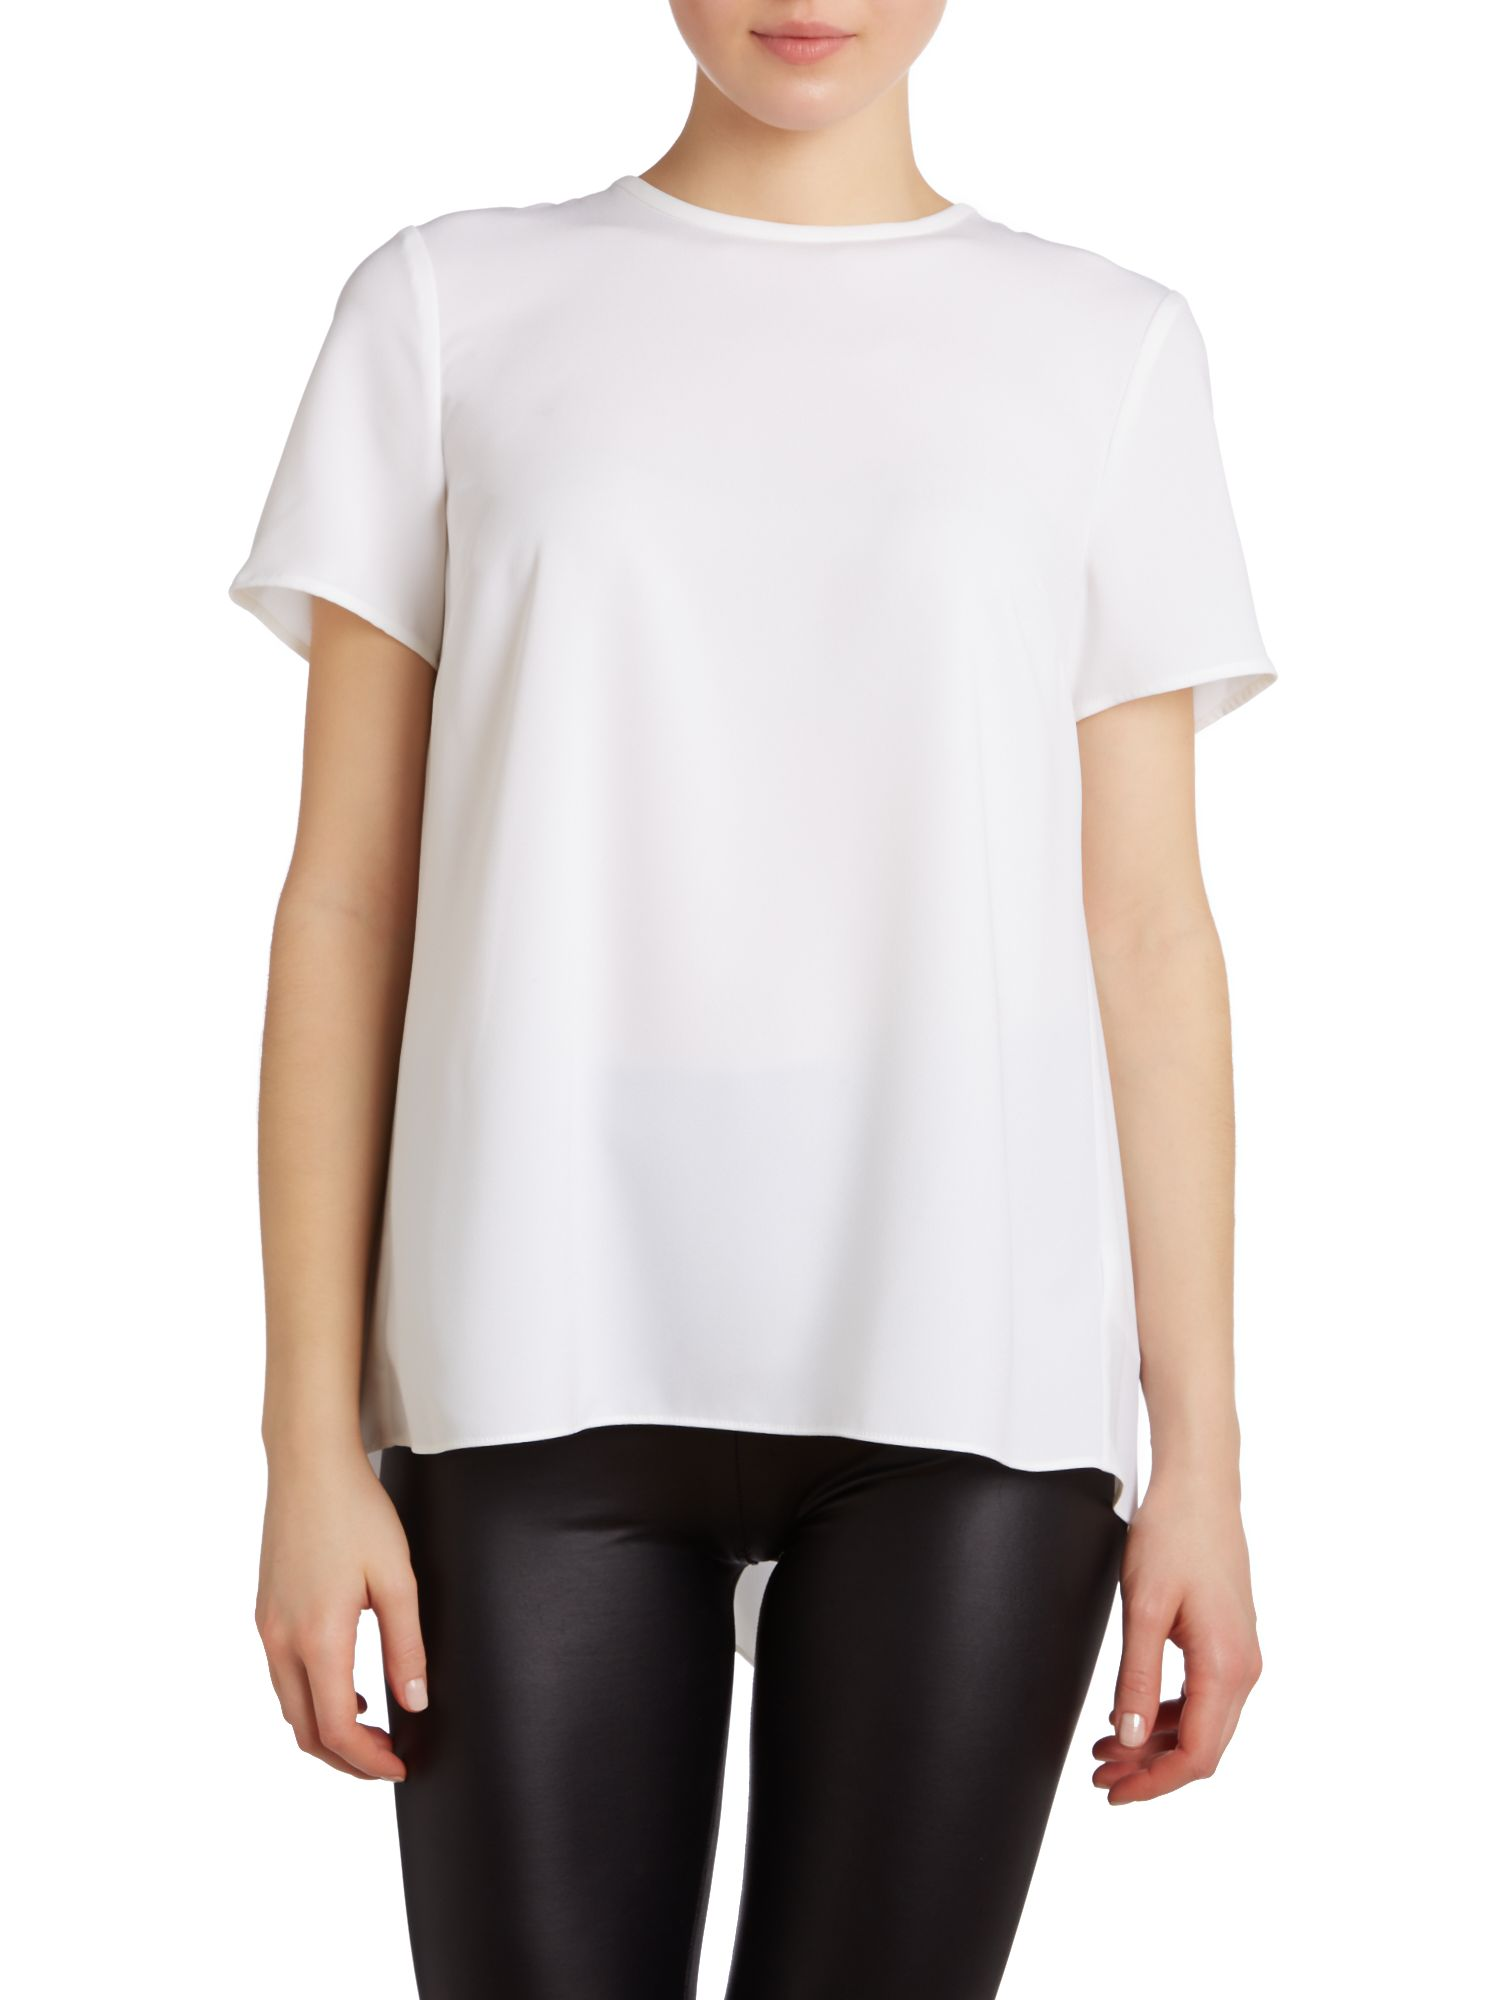 Crepe stretch tee with pleated back